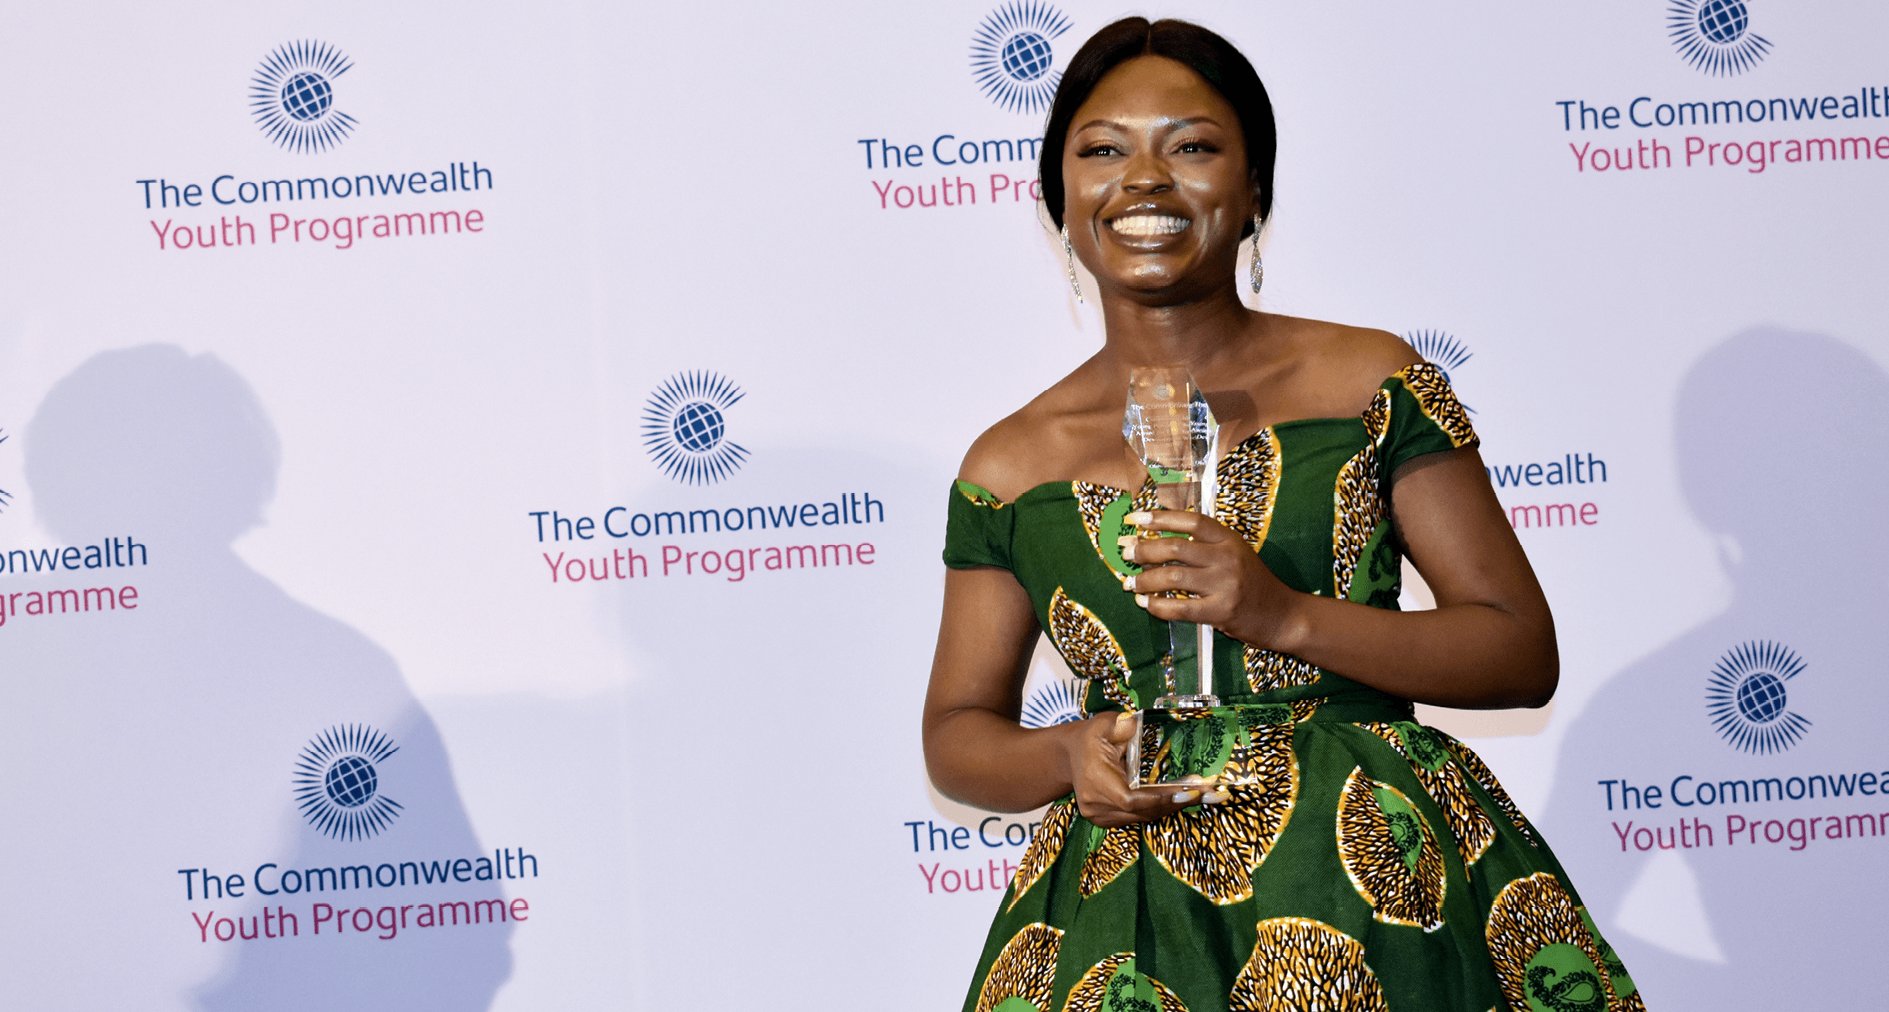 The 2019 Commonwealth Young Person of the Year, Oluwaseun Ayodeji Osowobi. She was born and raised in Nigeria and is the Executive Director of Stand to End Rape Initiative, a Not-for-Profit Organization fighting against sexual violence.